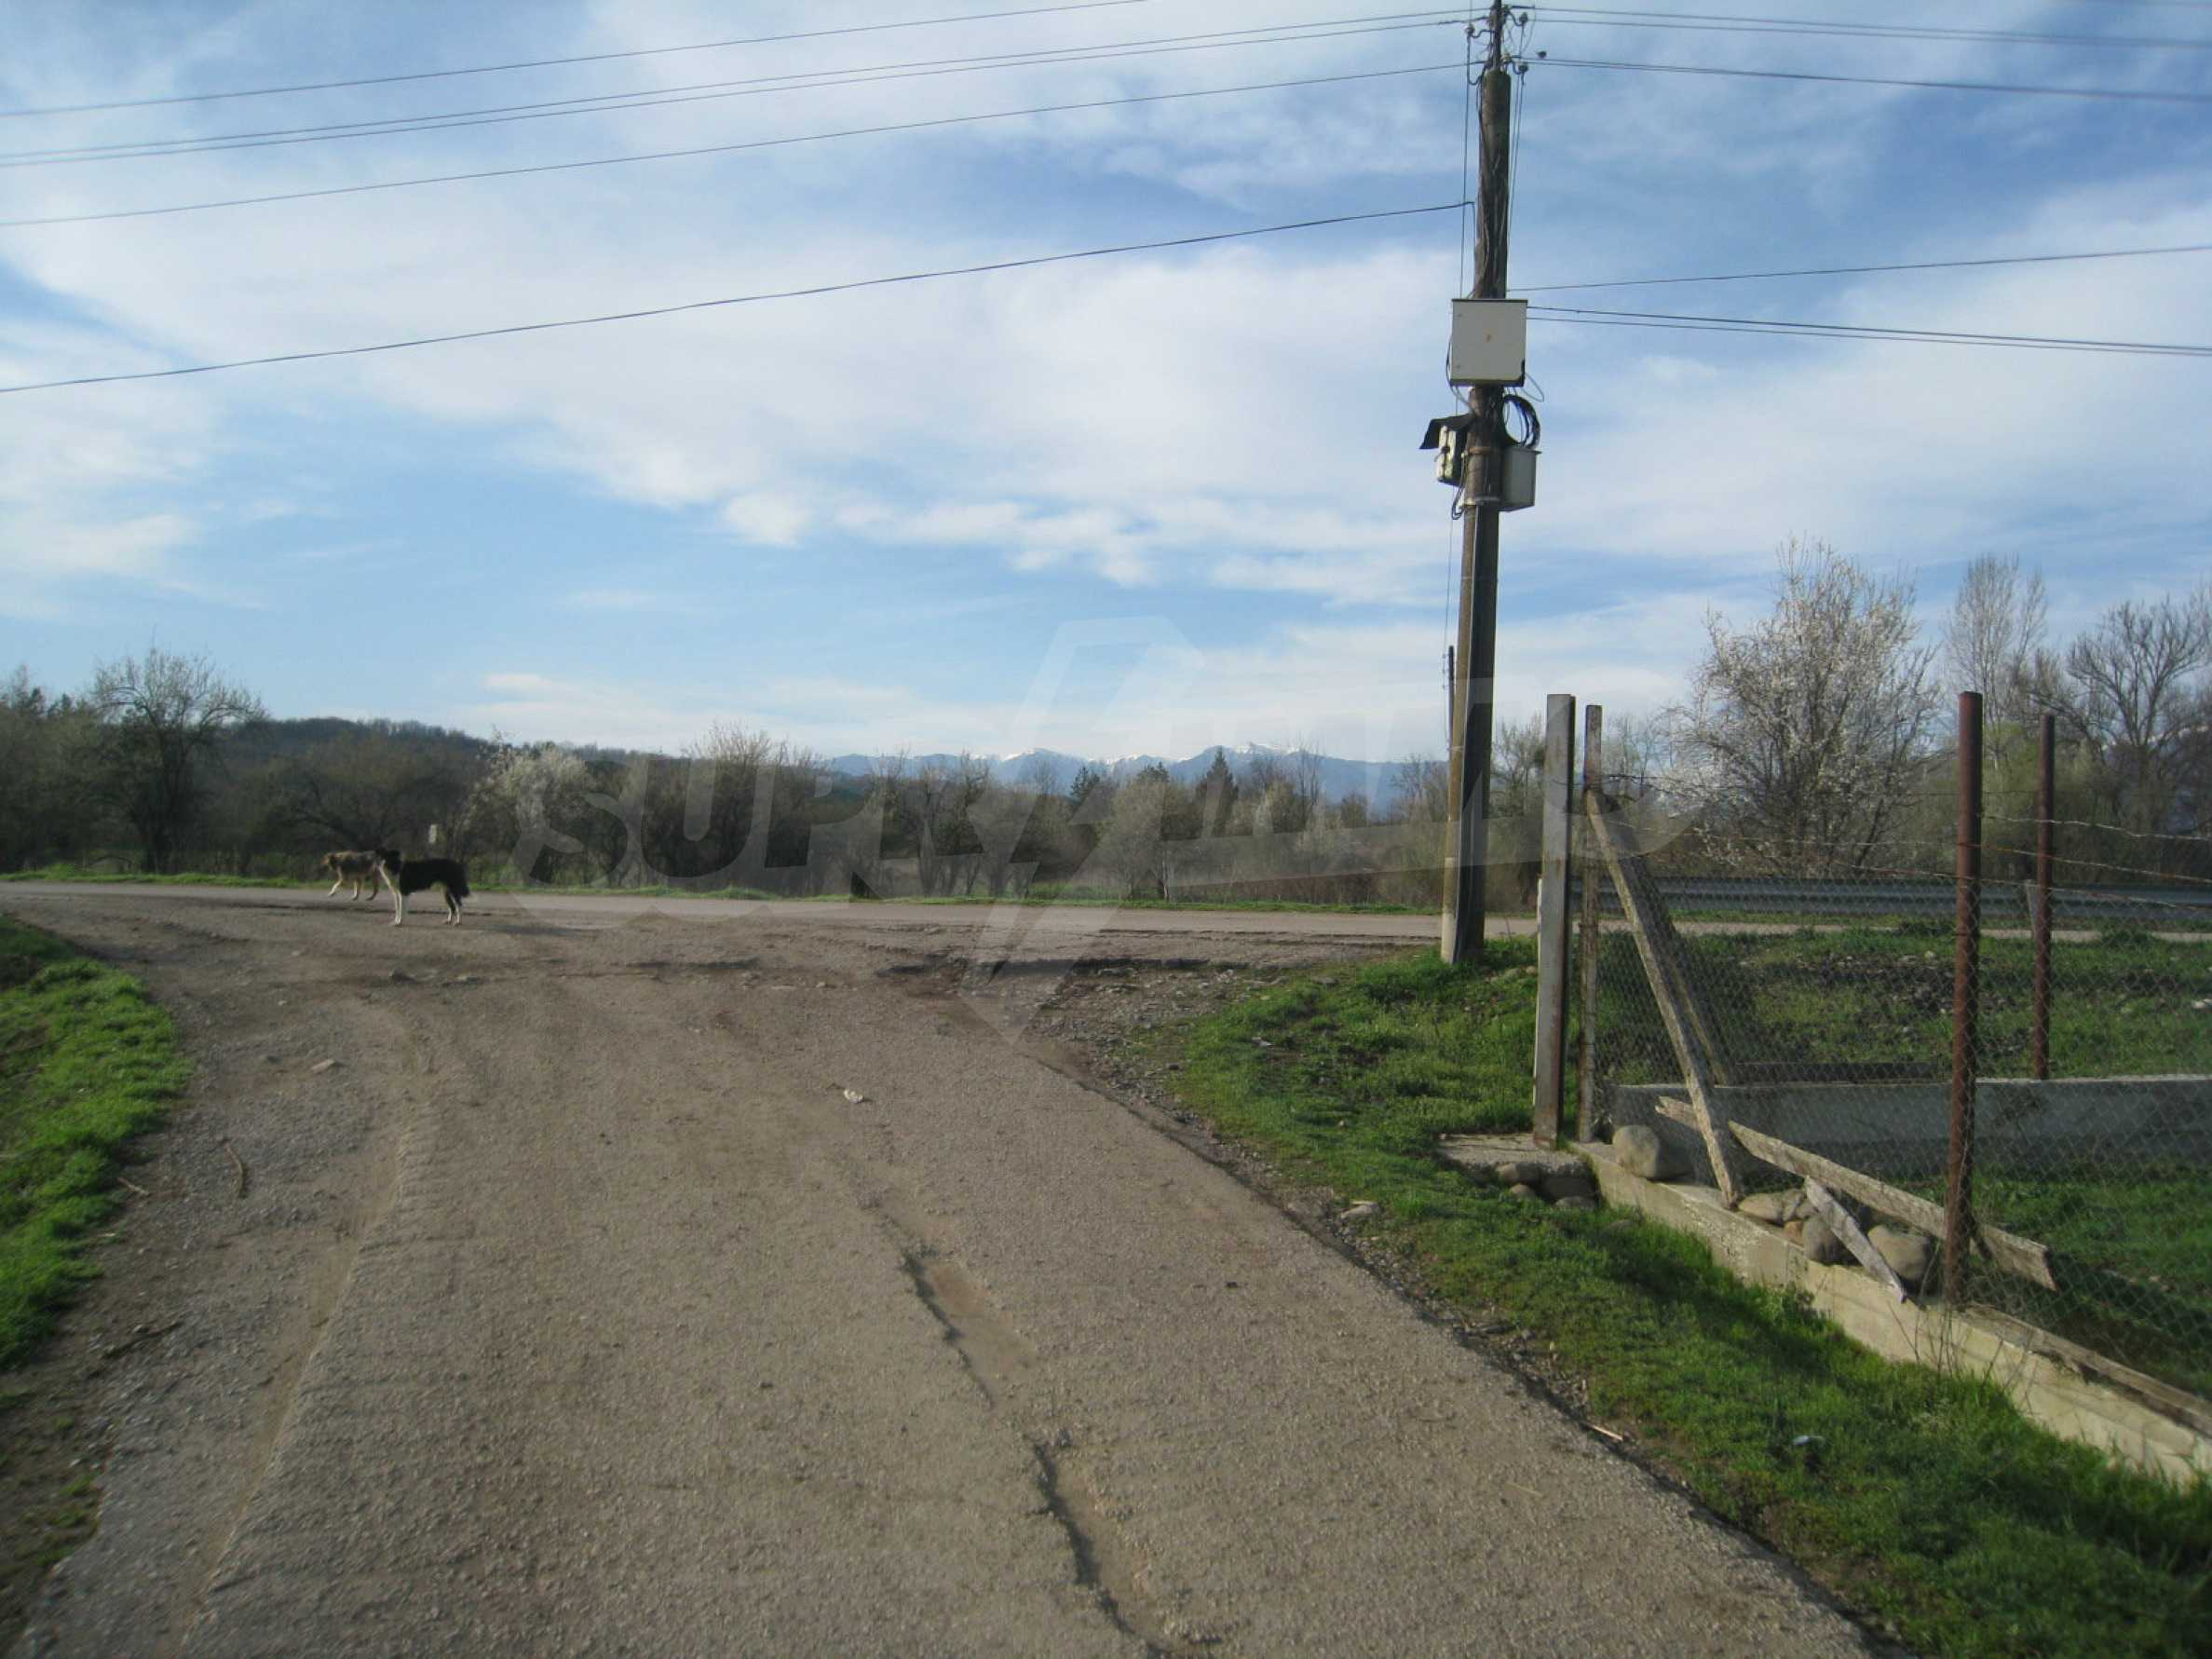 Fishpond, warehouses, residential areas and asphalt ground near Montana 49